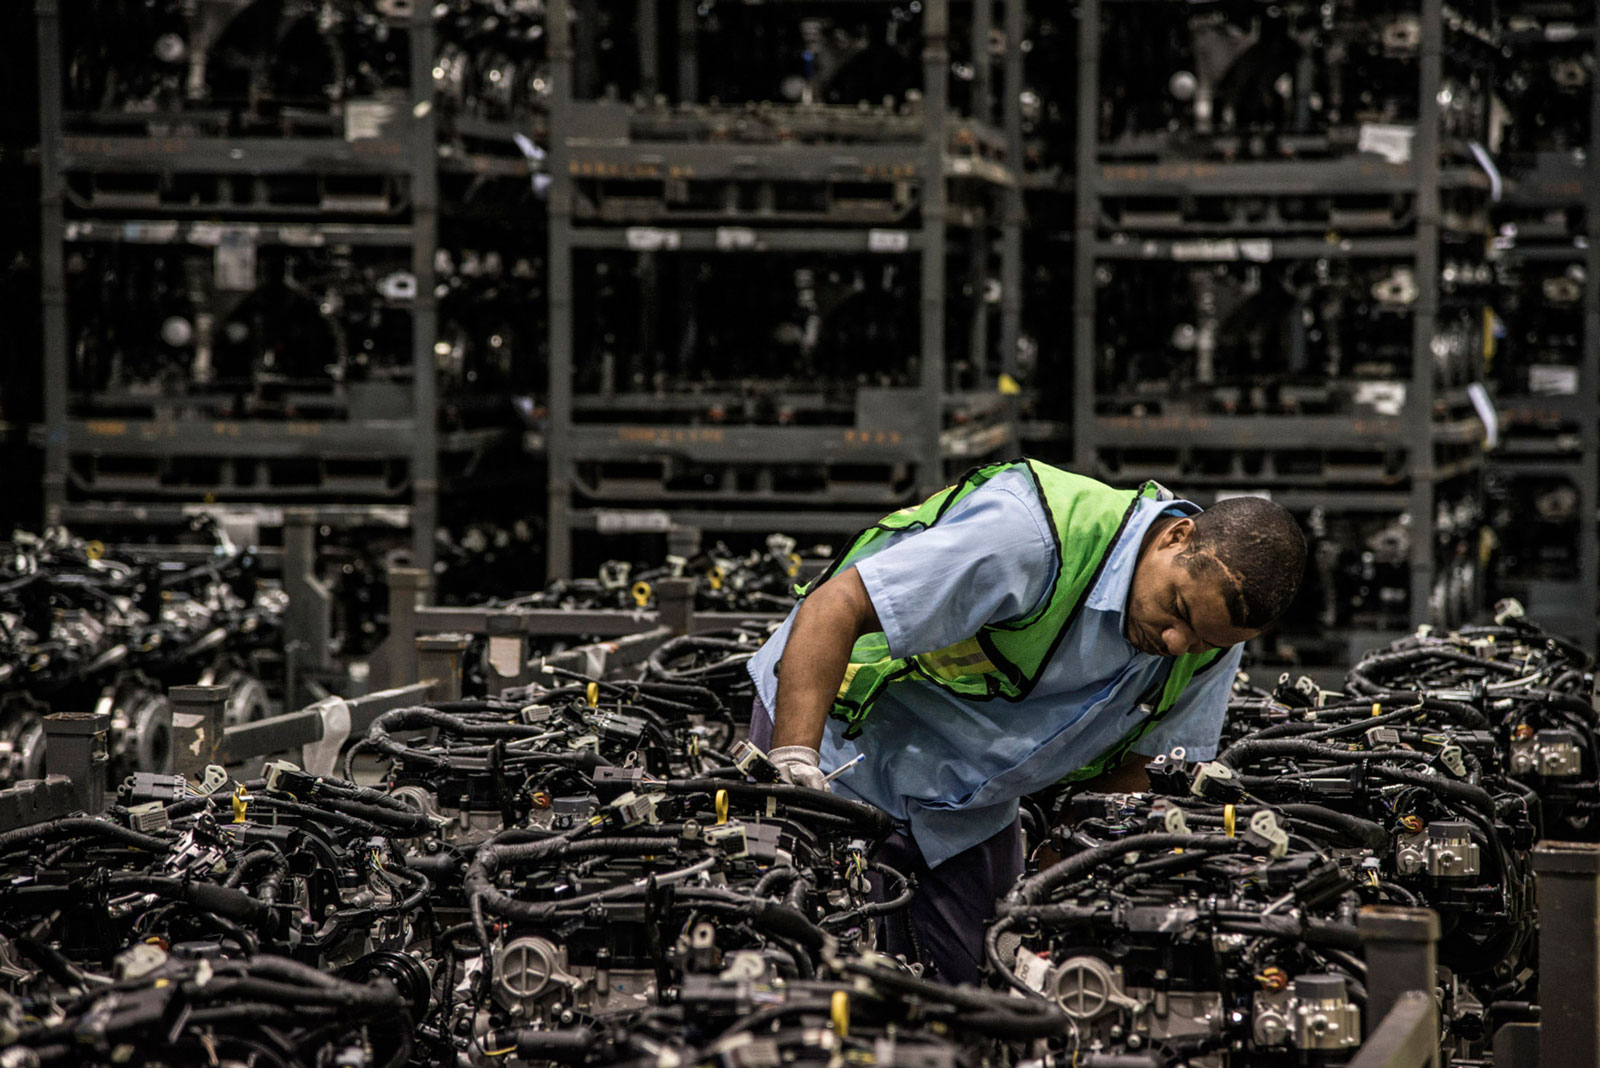 An employee performs a quality-control inspection on the assembly line at the Ford Motor engine manufacturing facility in Camacari, Brazil, on Monday, July 27, 2015.